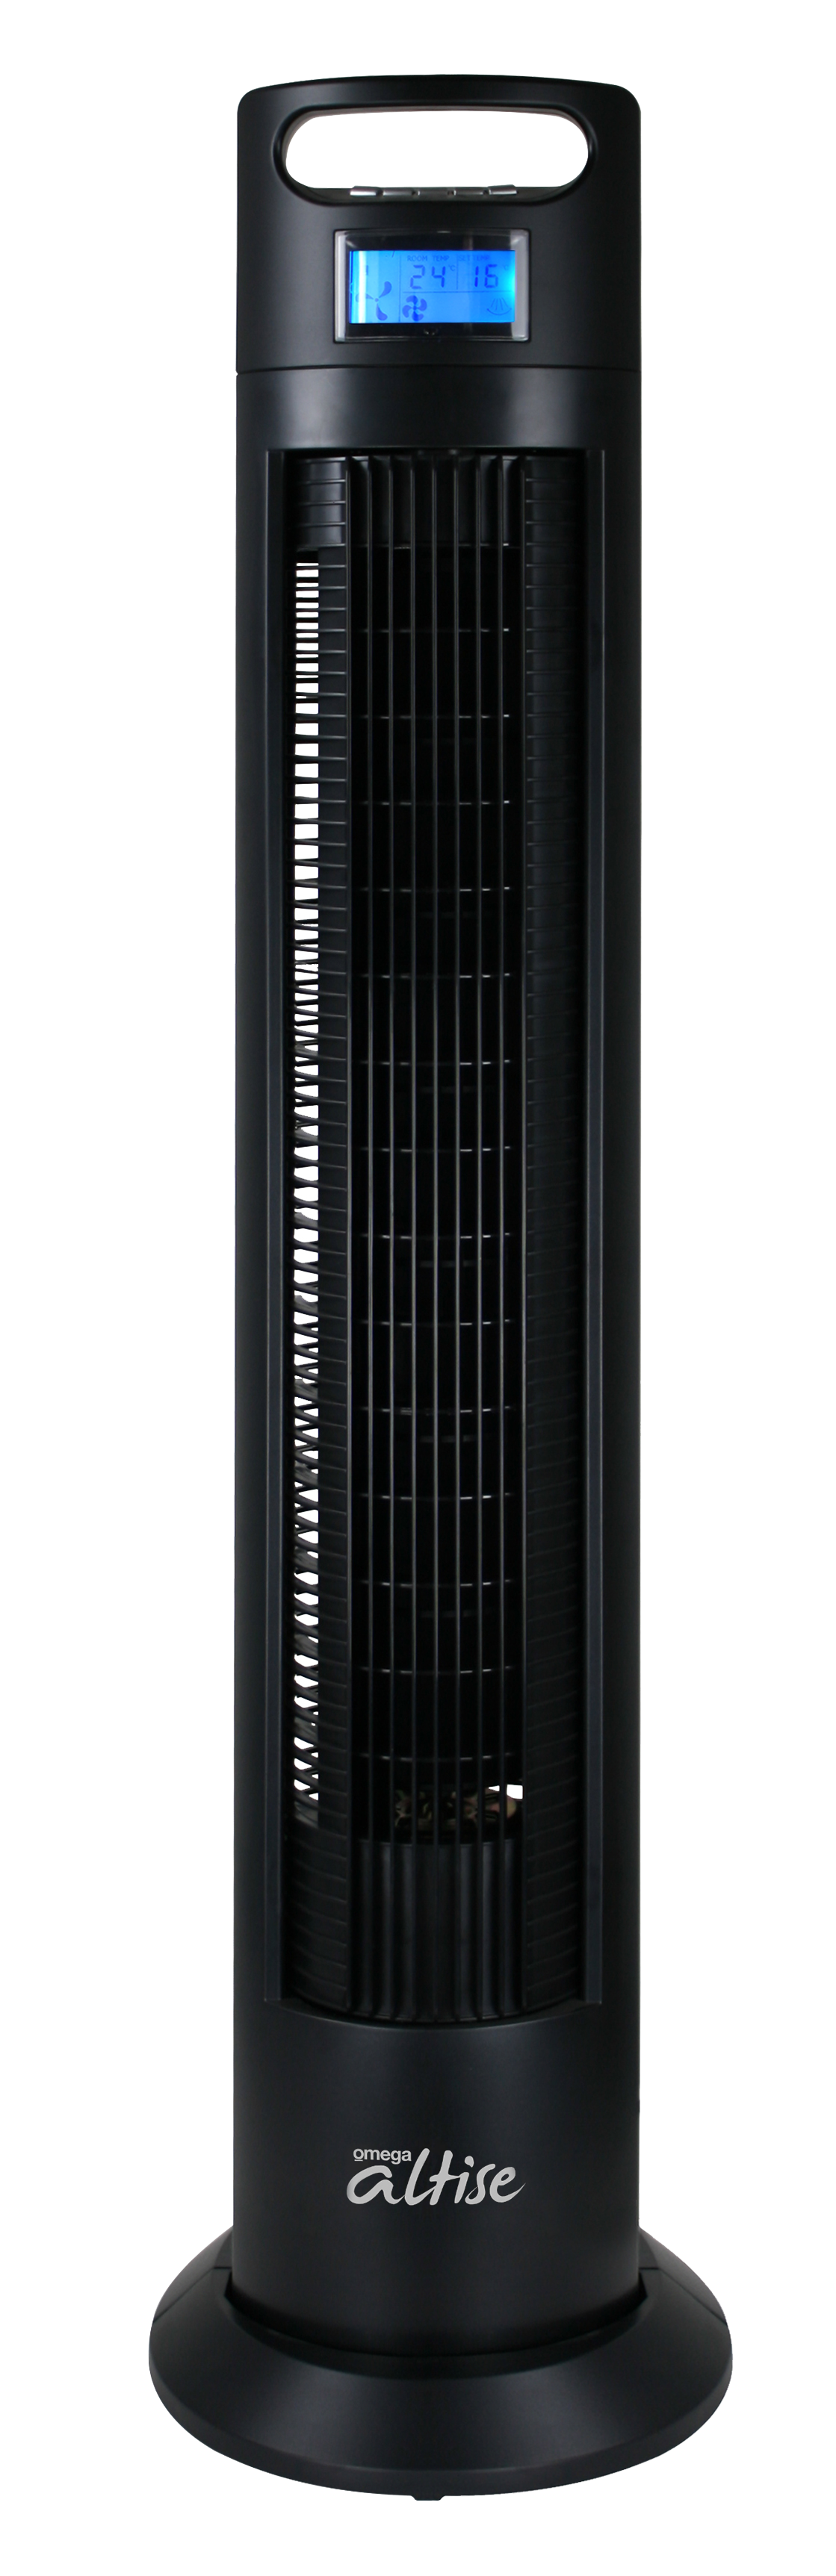 Omega Altise Product Tilting Tower Fan 99cm (OT99B)